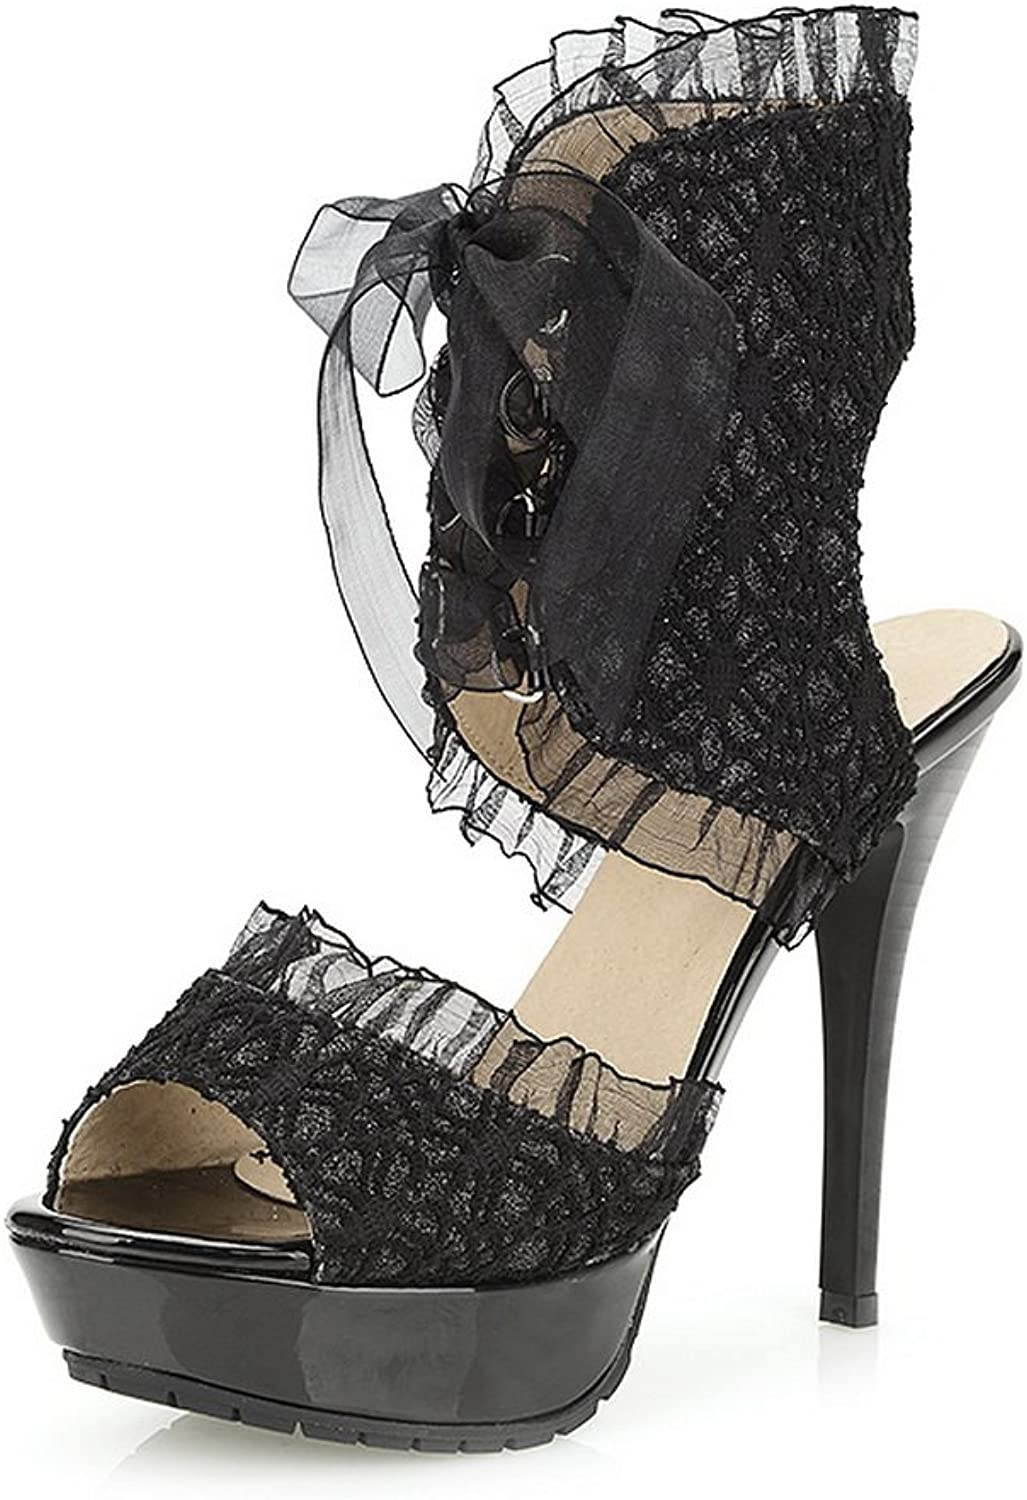 1TO9 Ladies Ribbons Lace-Up Black Soft Material Sandals - 7.5 B(M) US